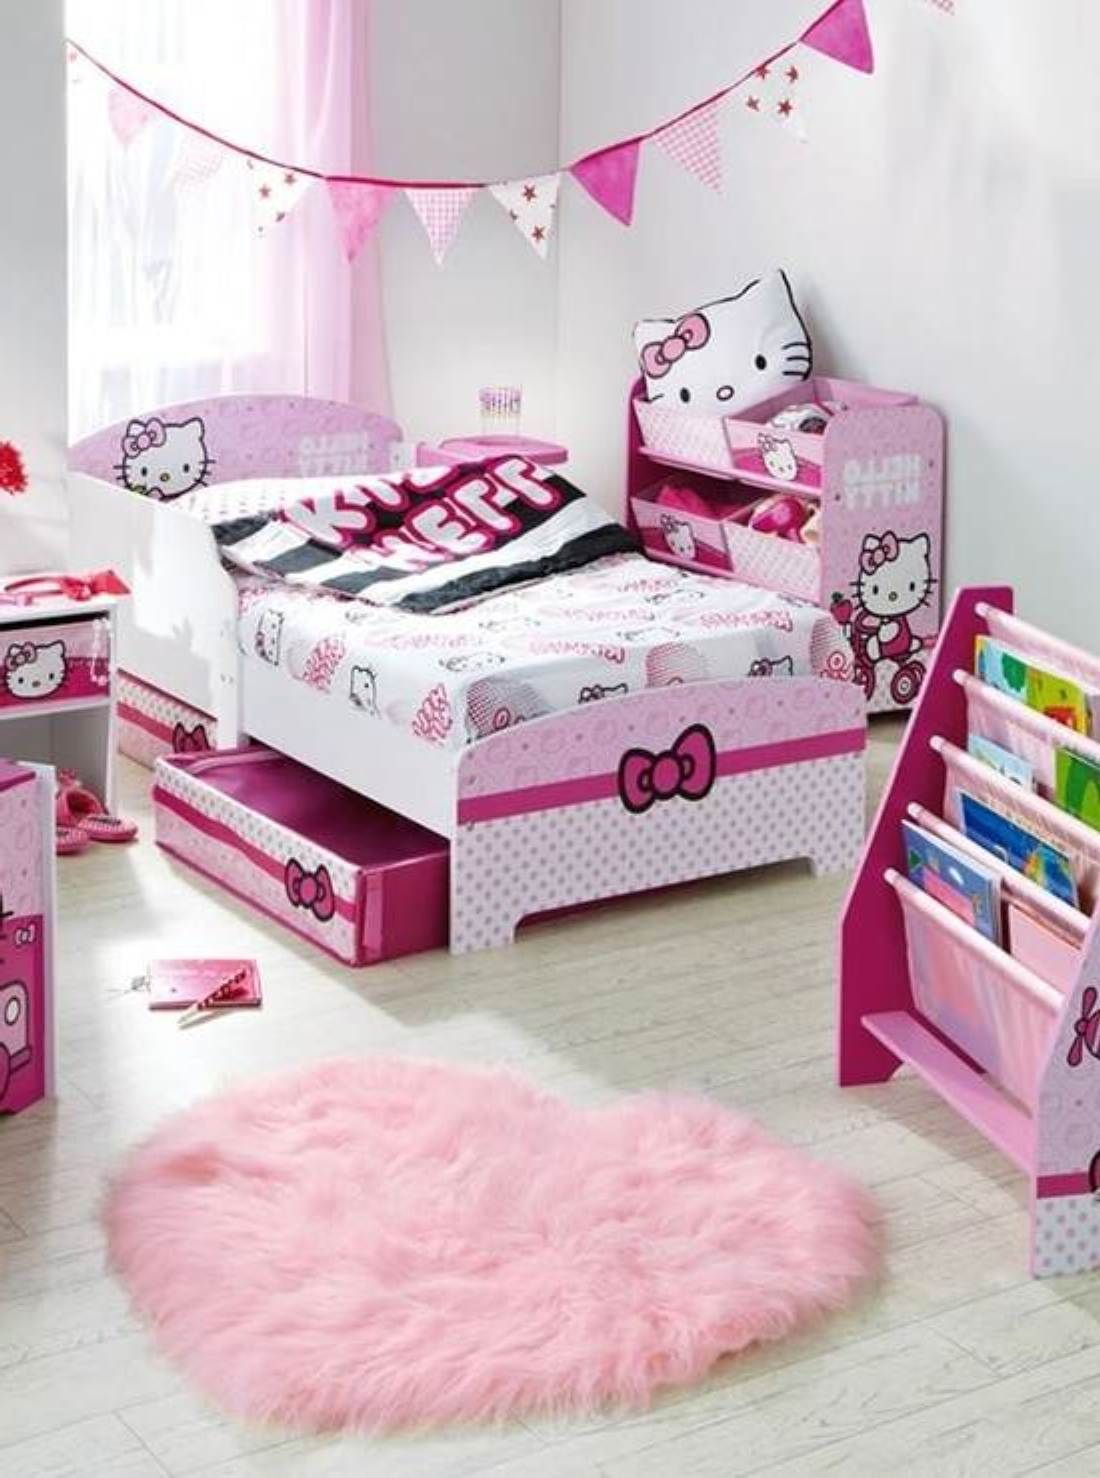 Bedrooms for girls hello kitty - Hello Kitty Bedroom